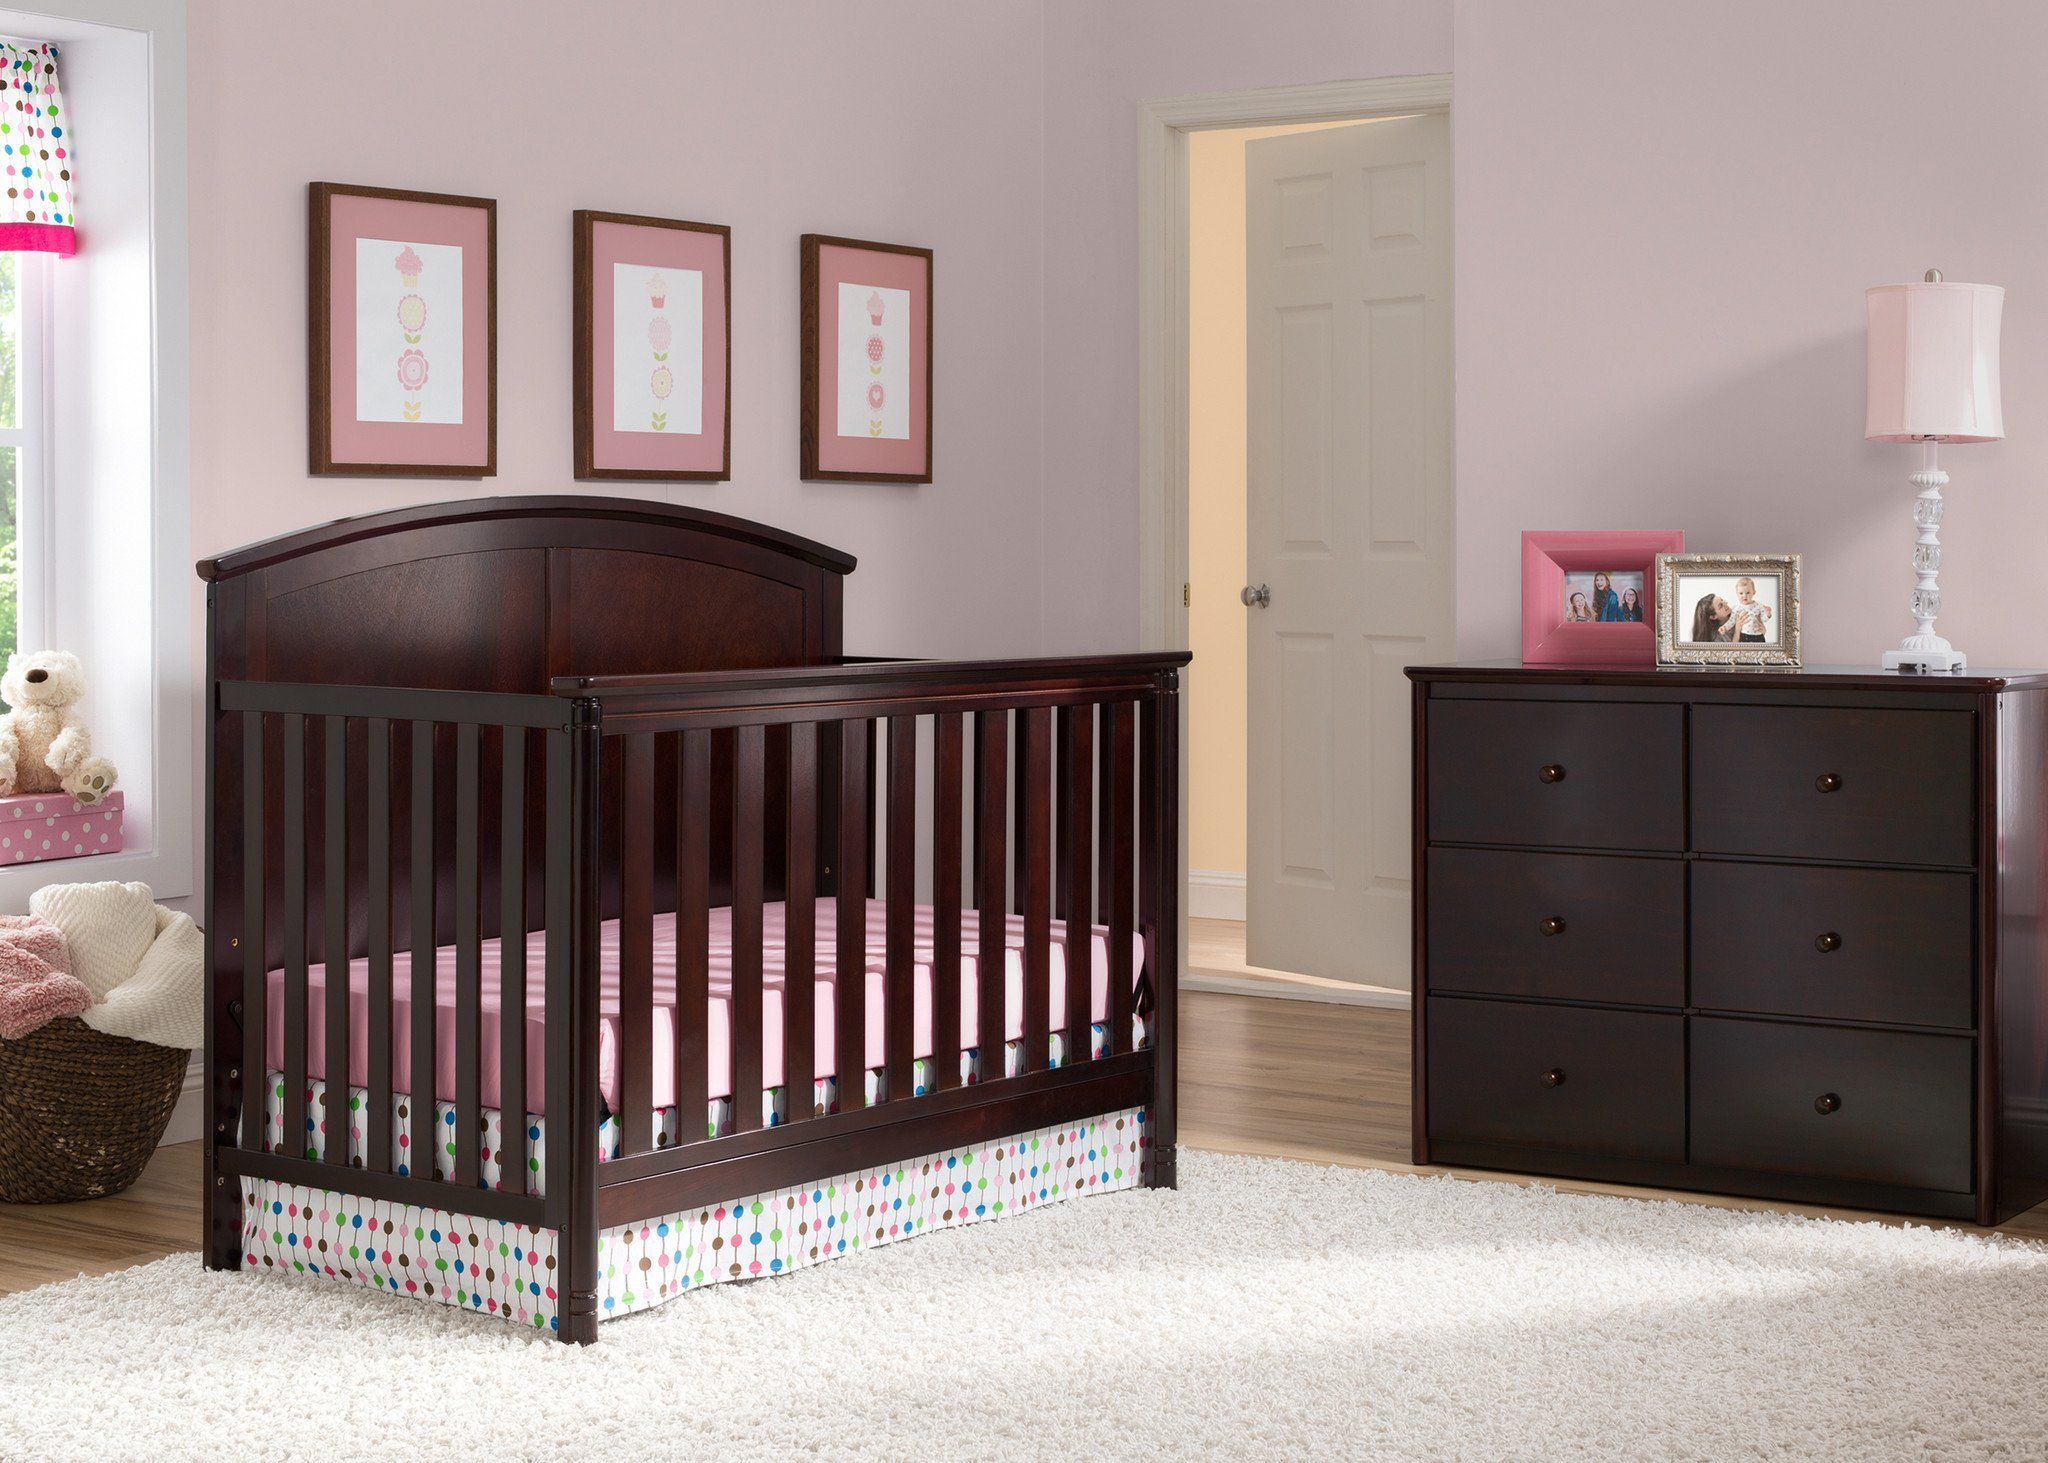 Delta Children Dark Chocolate (207) Somerset 4-in-1 Crib in Setting 2 b1b